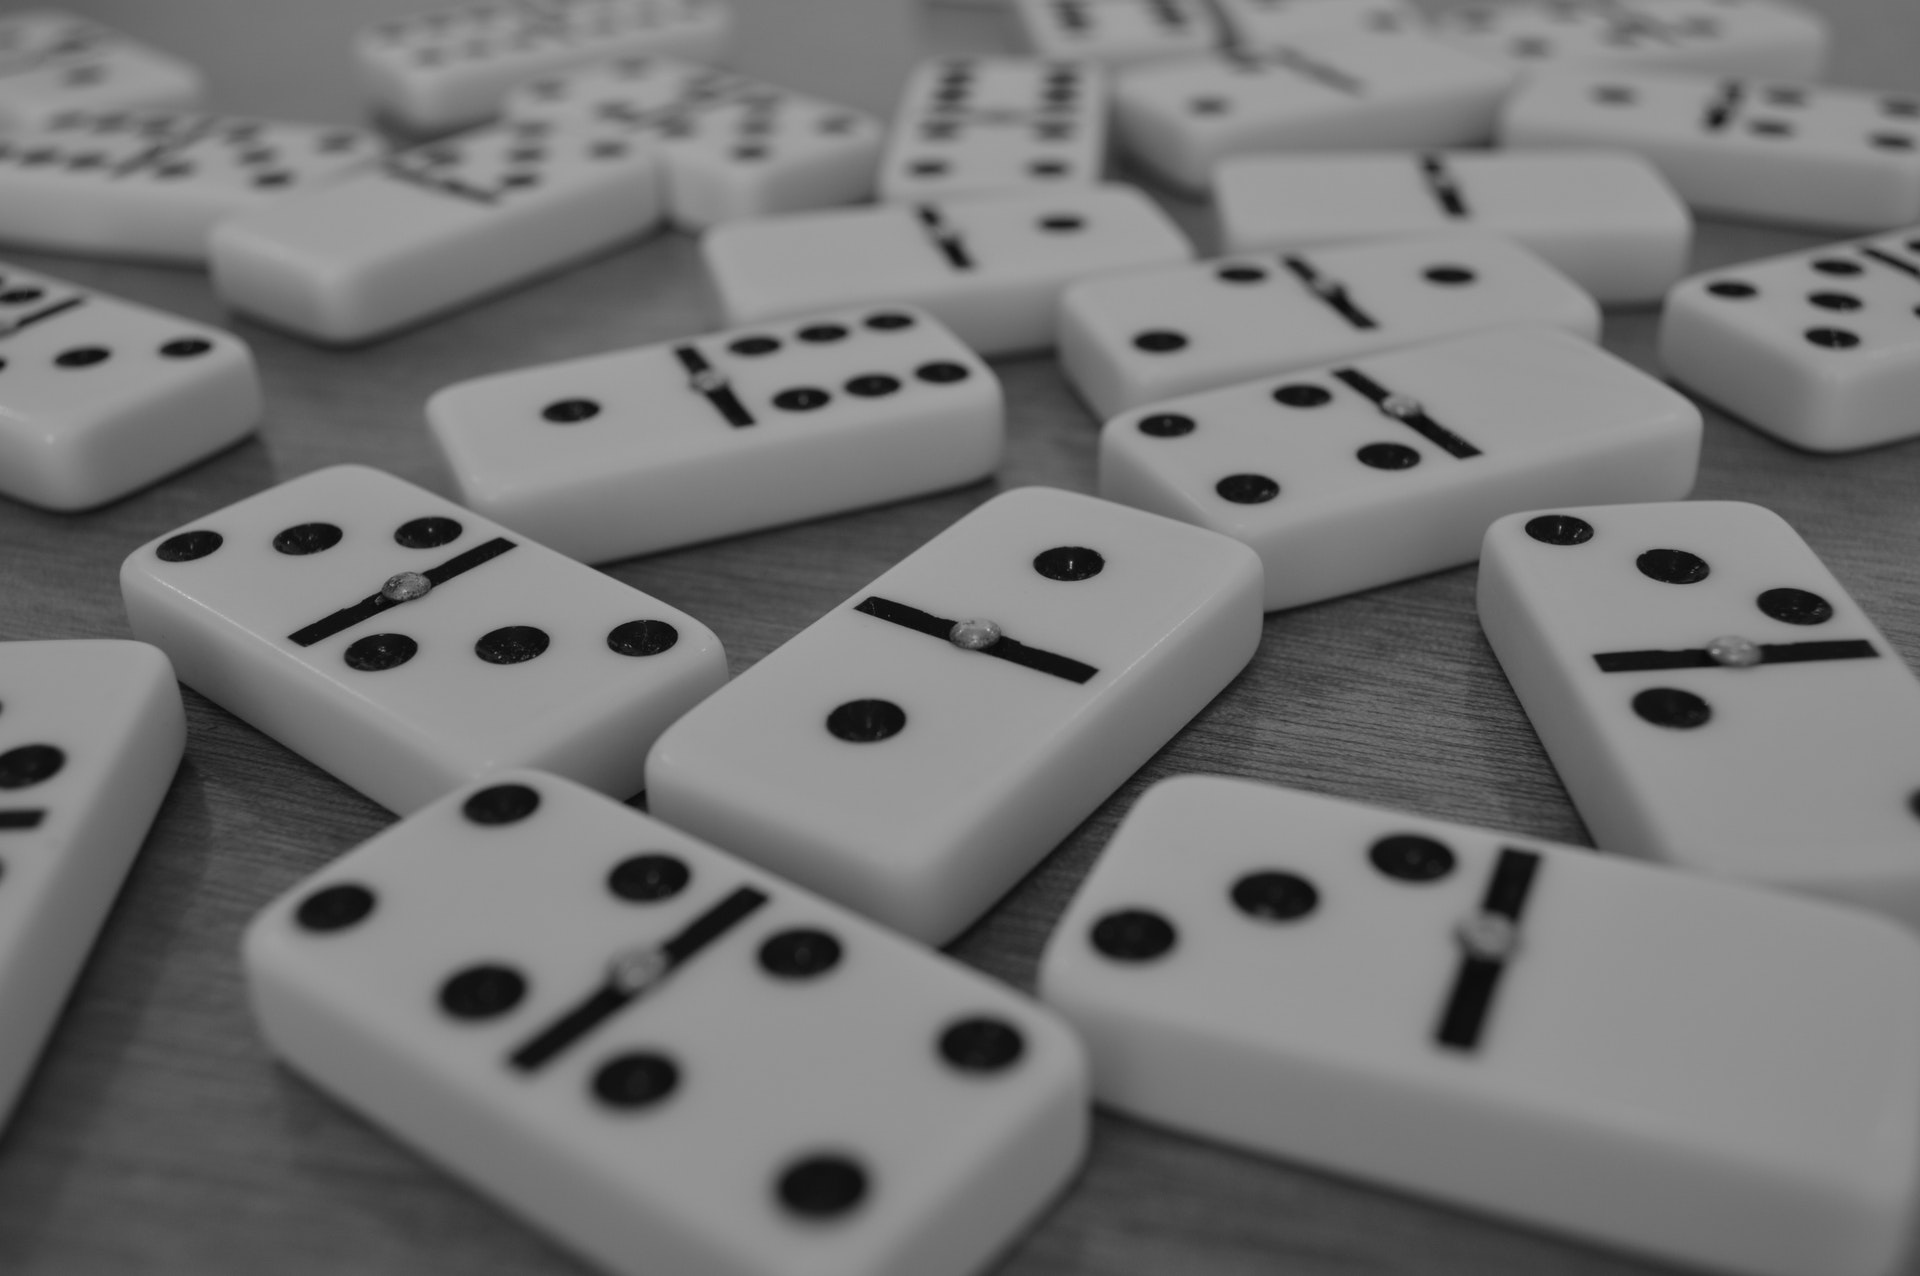 The domino effect of losing a loved one